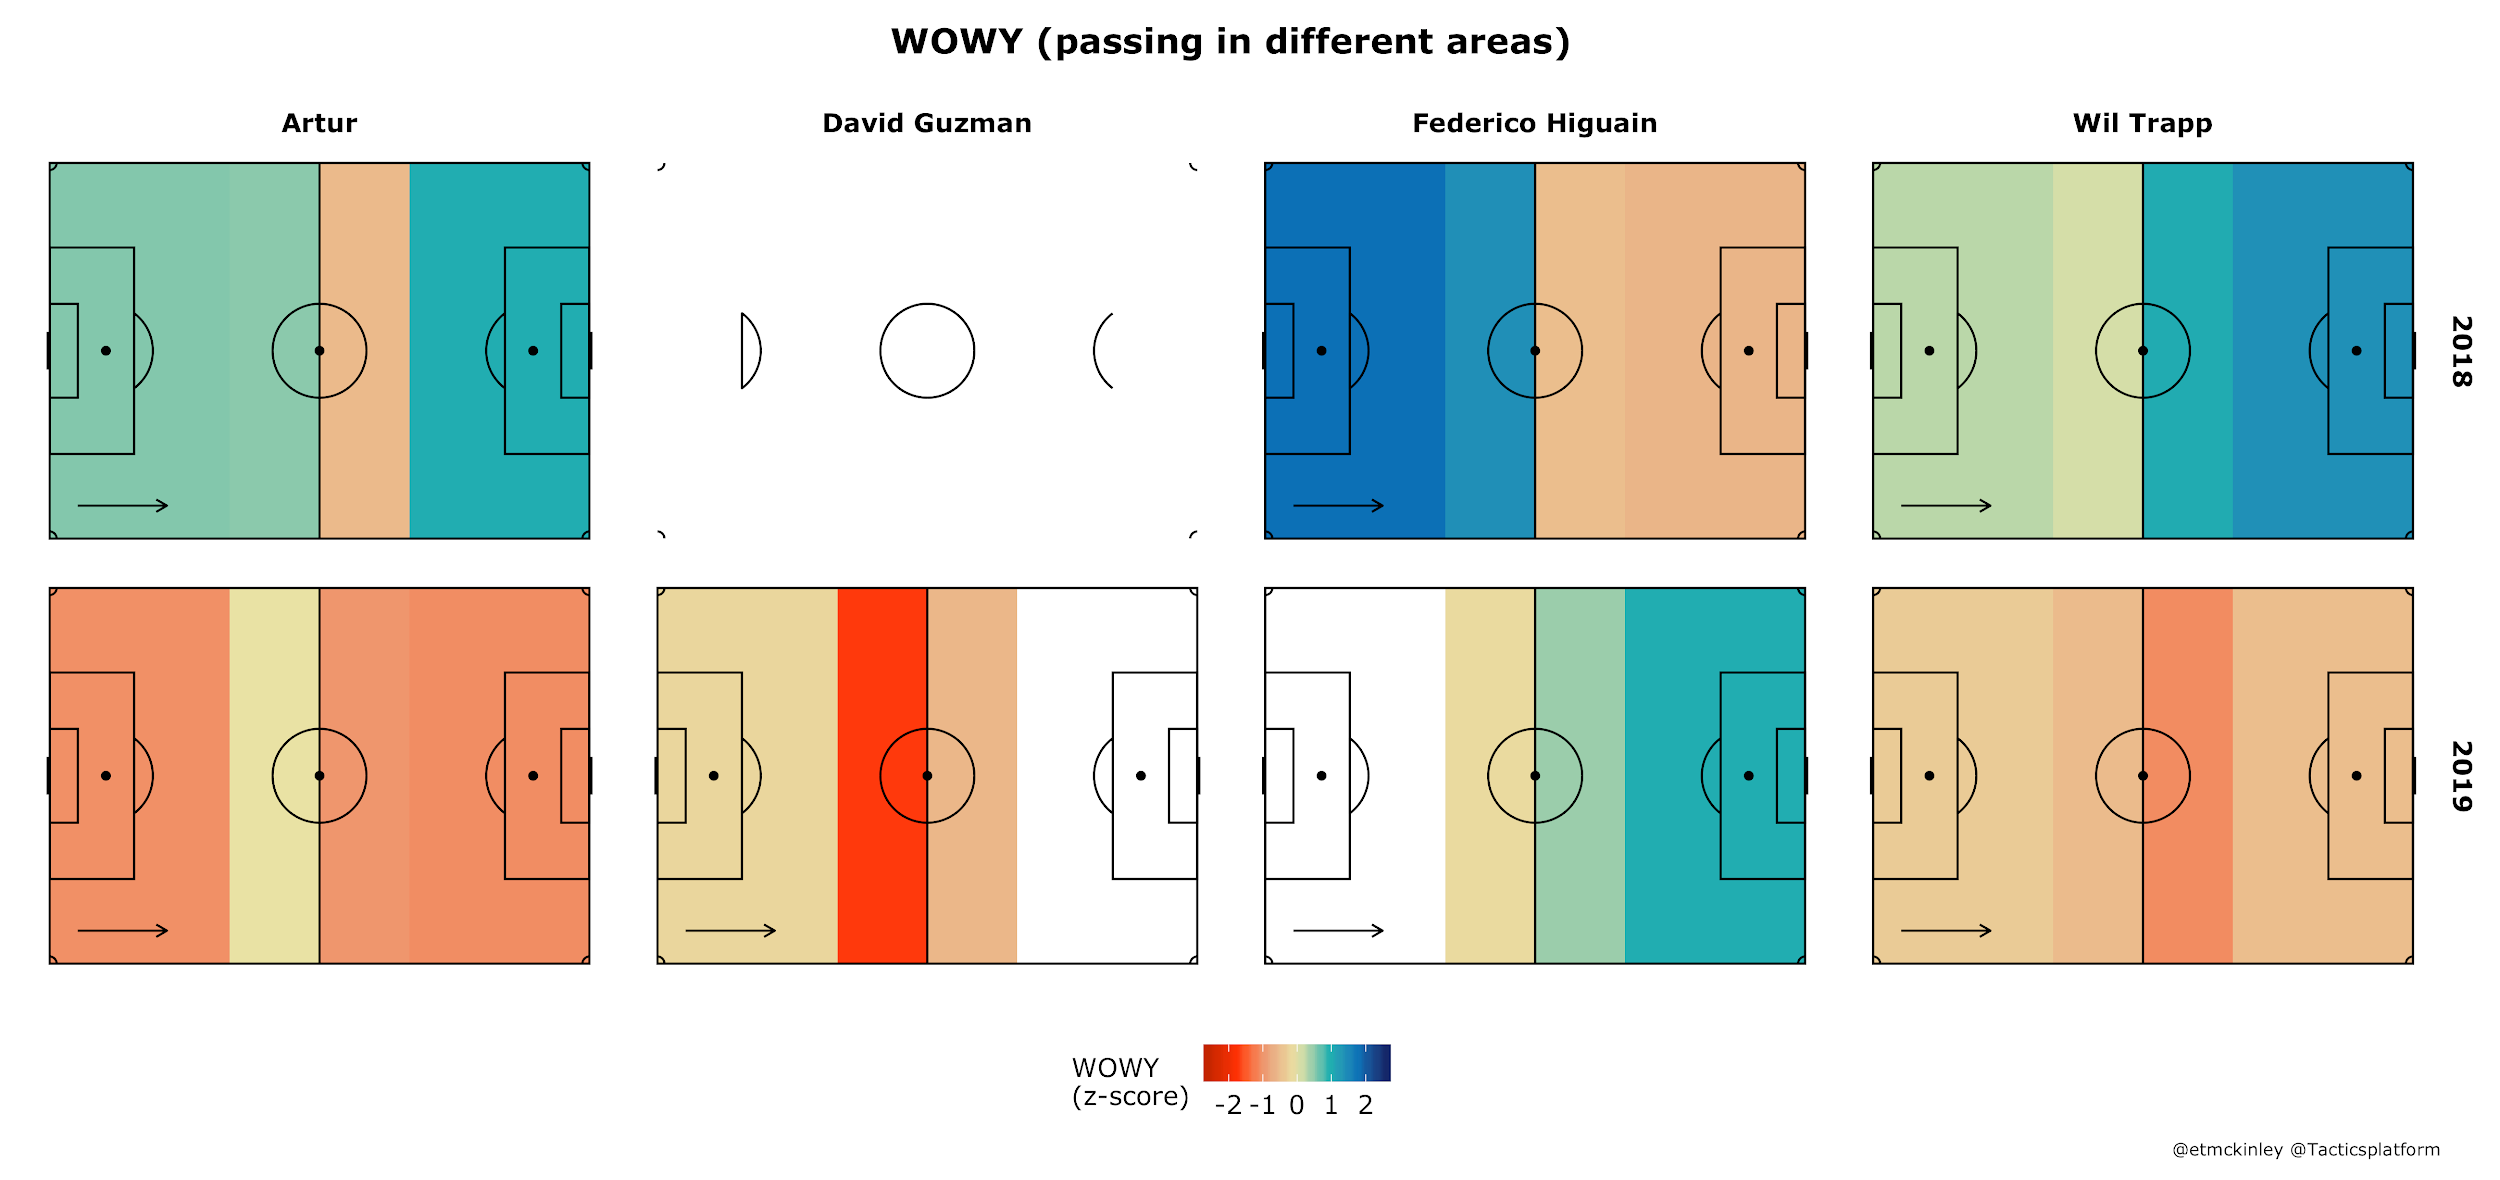 Blue means possessions by that player in that zone contribute more positively to the team's offense, red means possessions by that player in that zone contribute negatively to the team's offense.